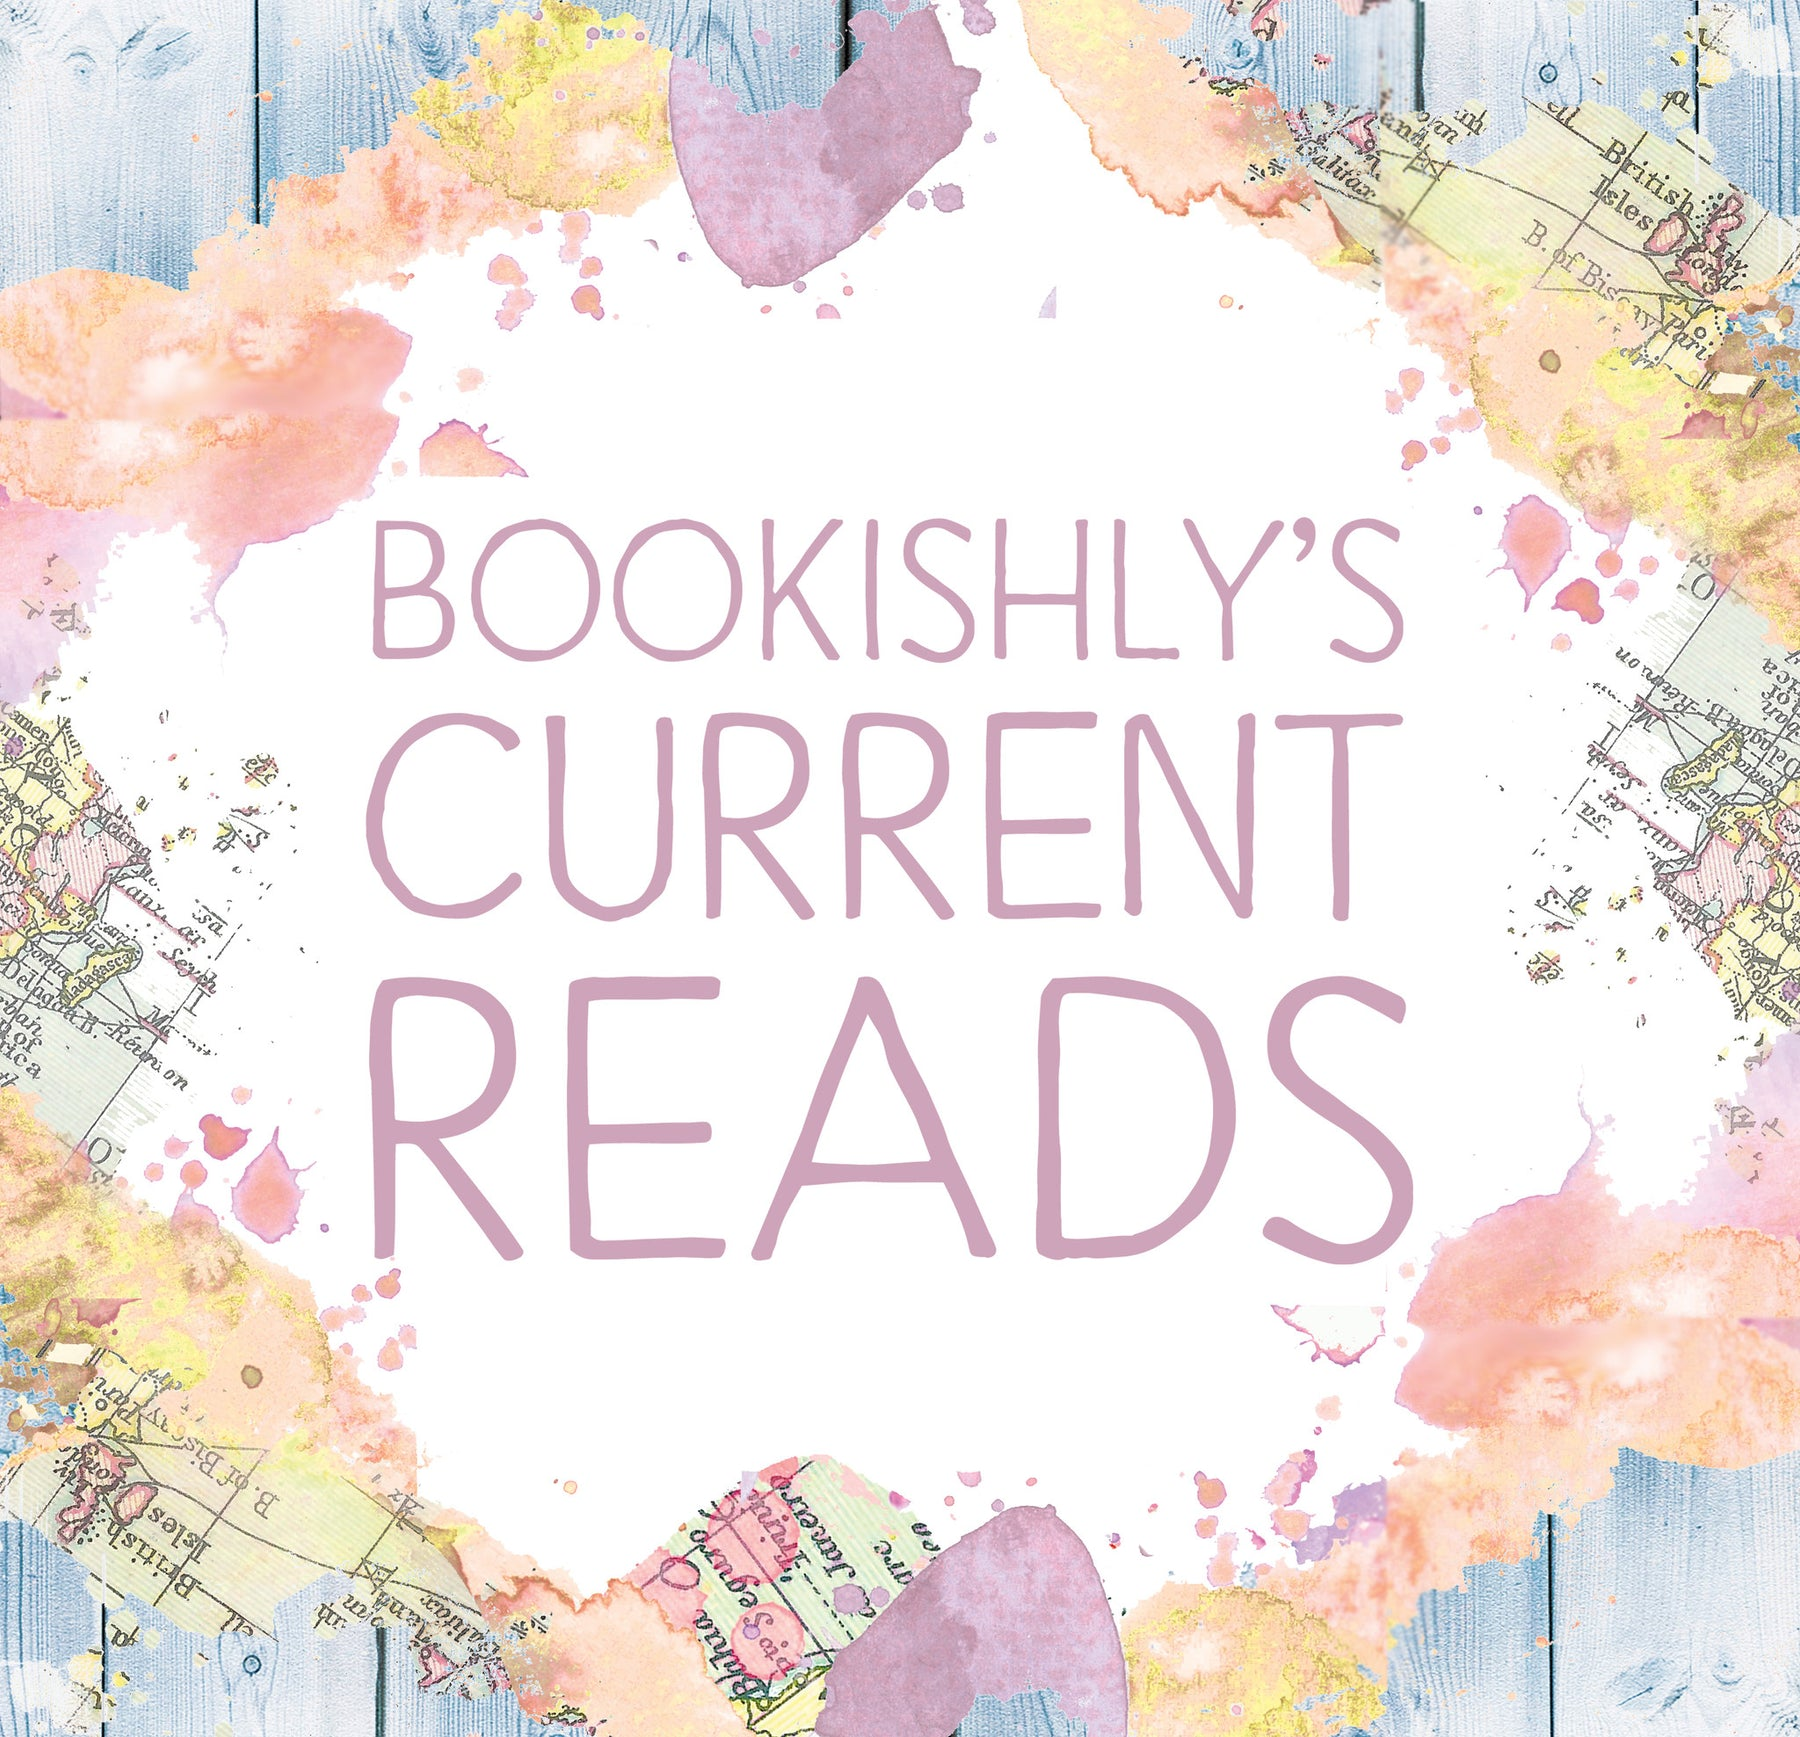 Bookishly's Current Reads!